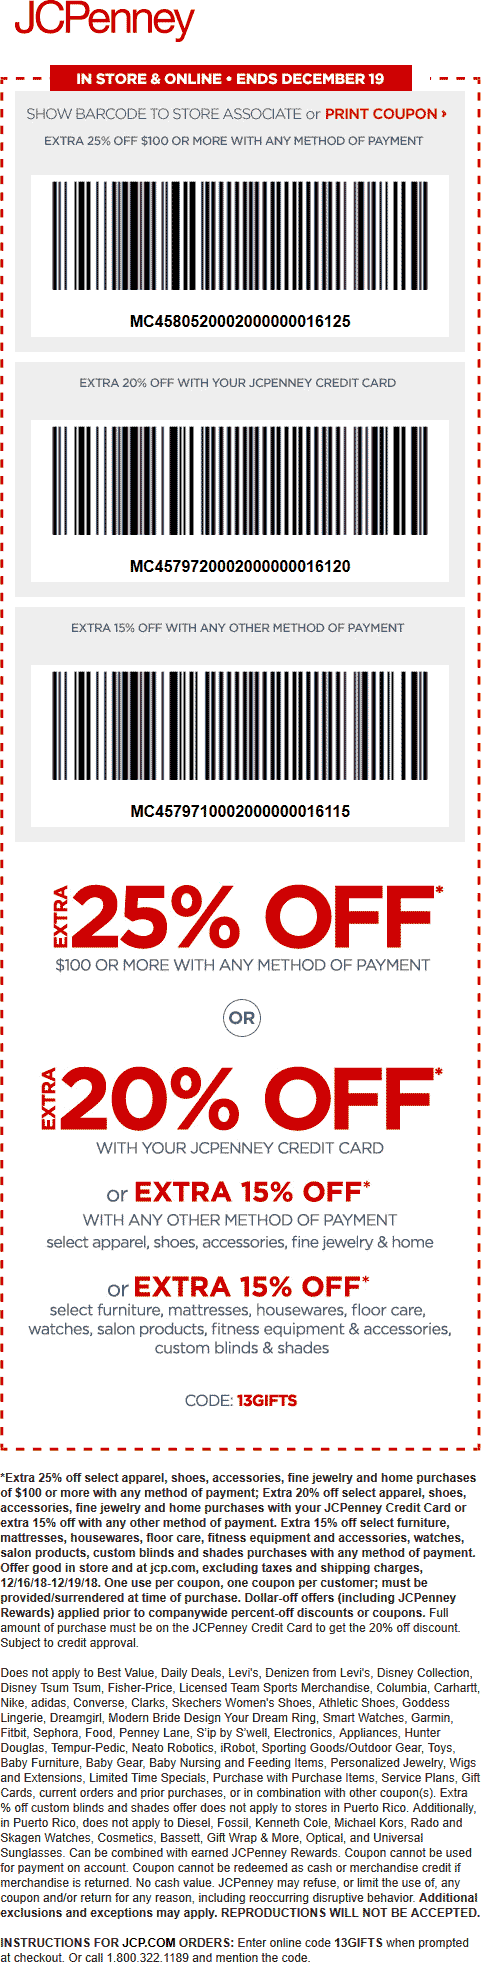 JCPenney Coupon May 2020 25% off $100 at JCPenney, or online via promo code 13GIFTS